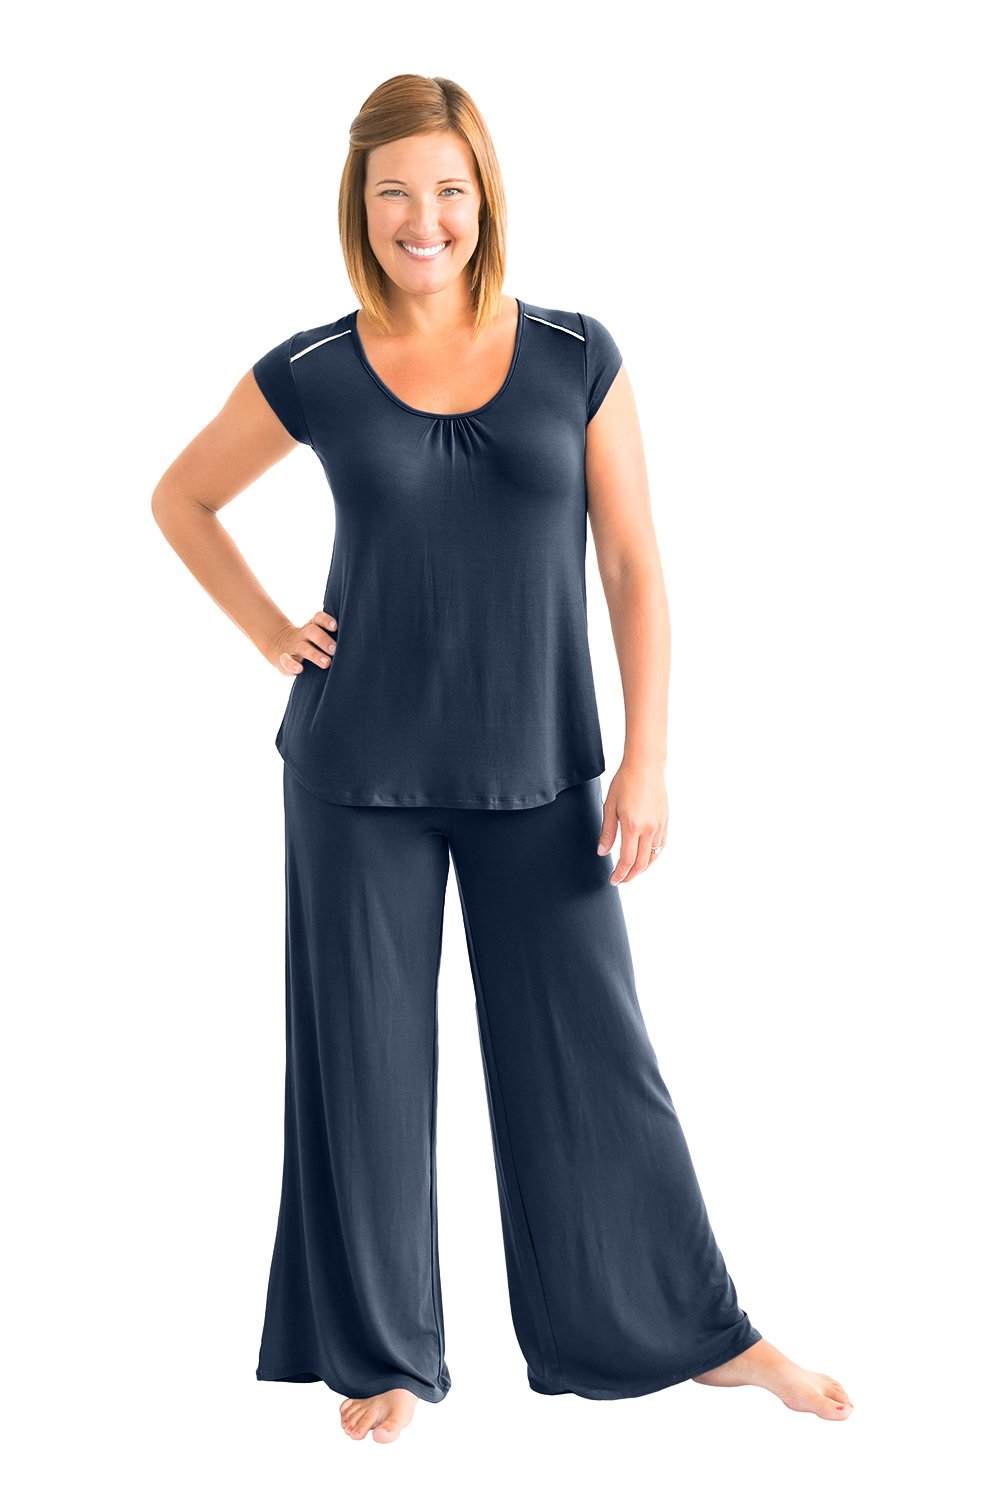 Kindred Bravely Amelia Ultra Soft Maternity & Nursing Pajamas - Pants Set (Navy Blue, XXL)